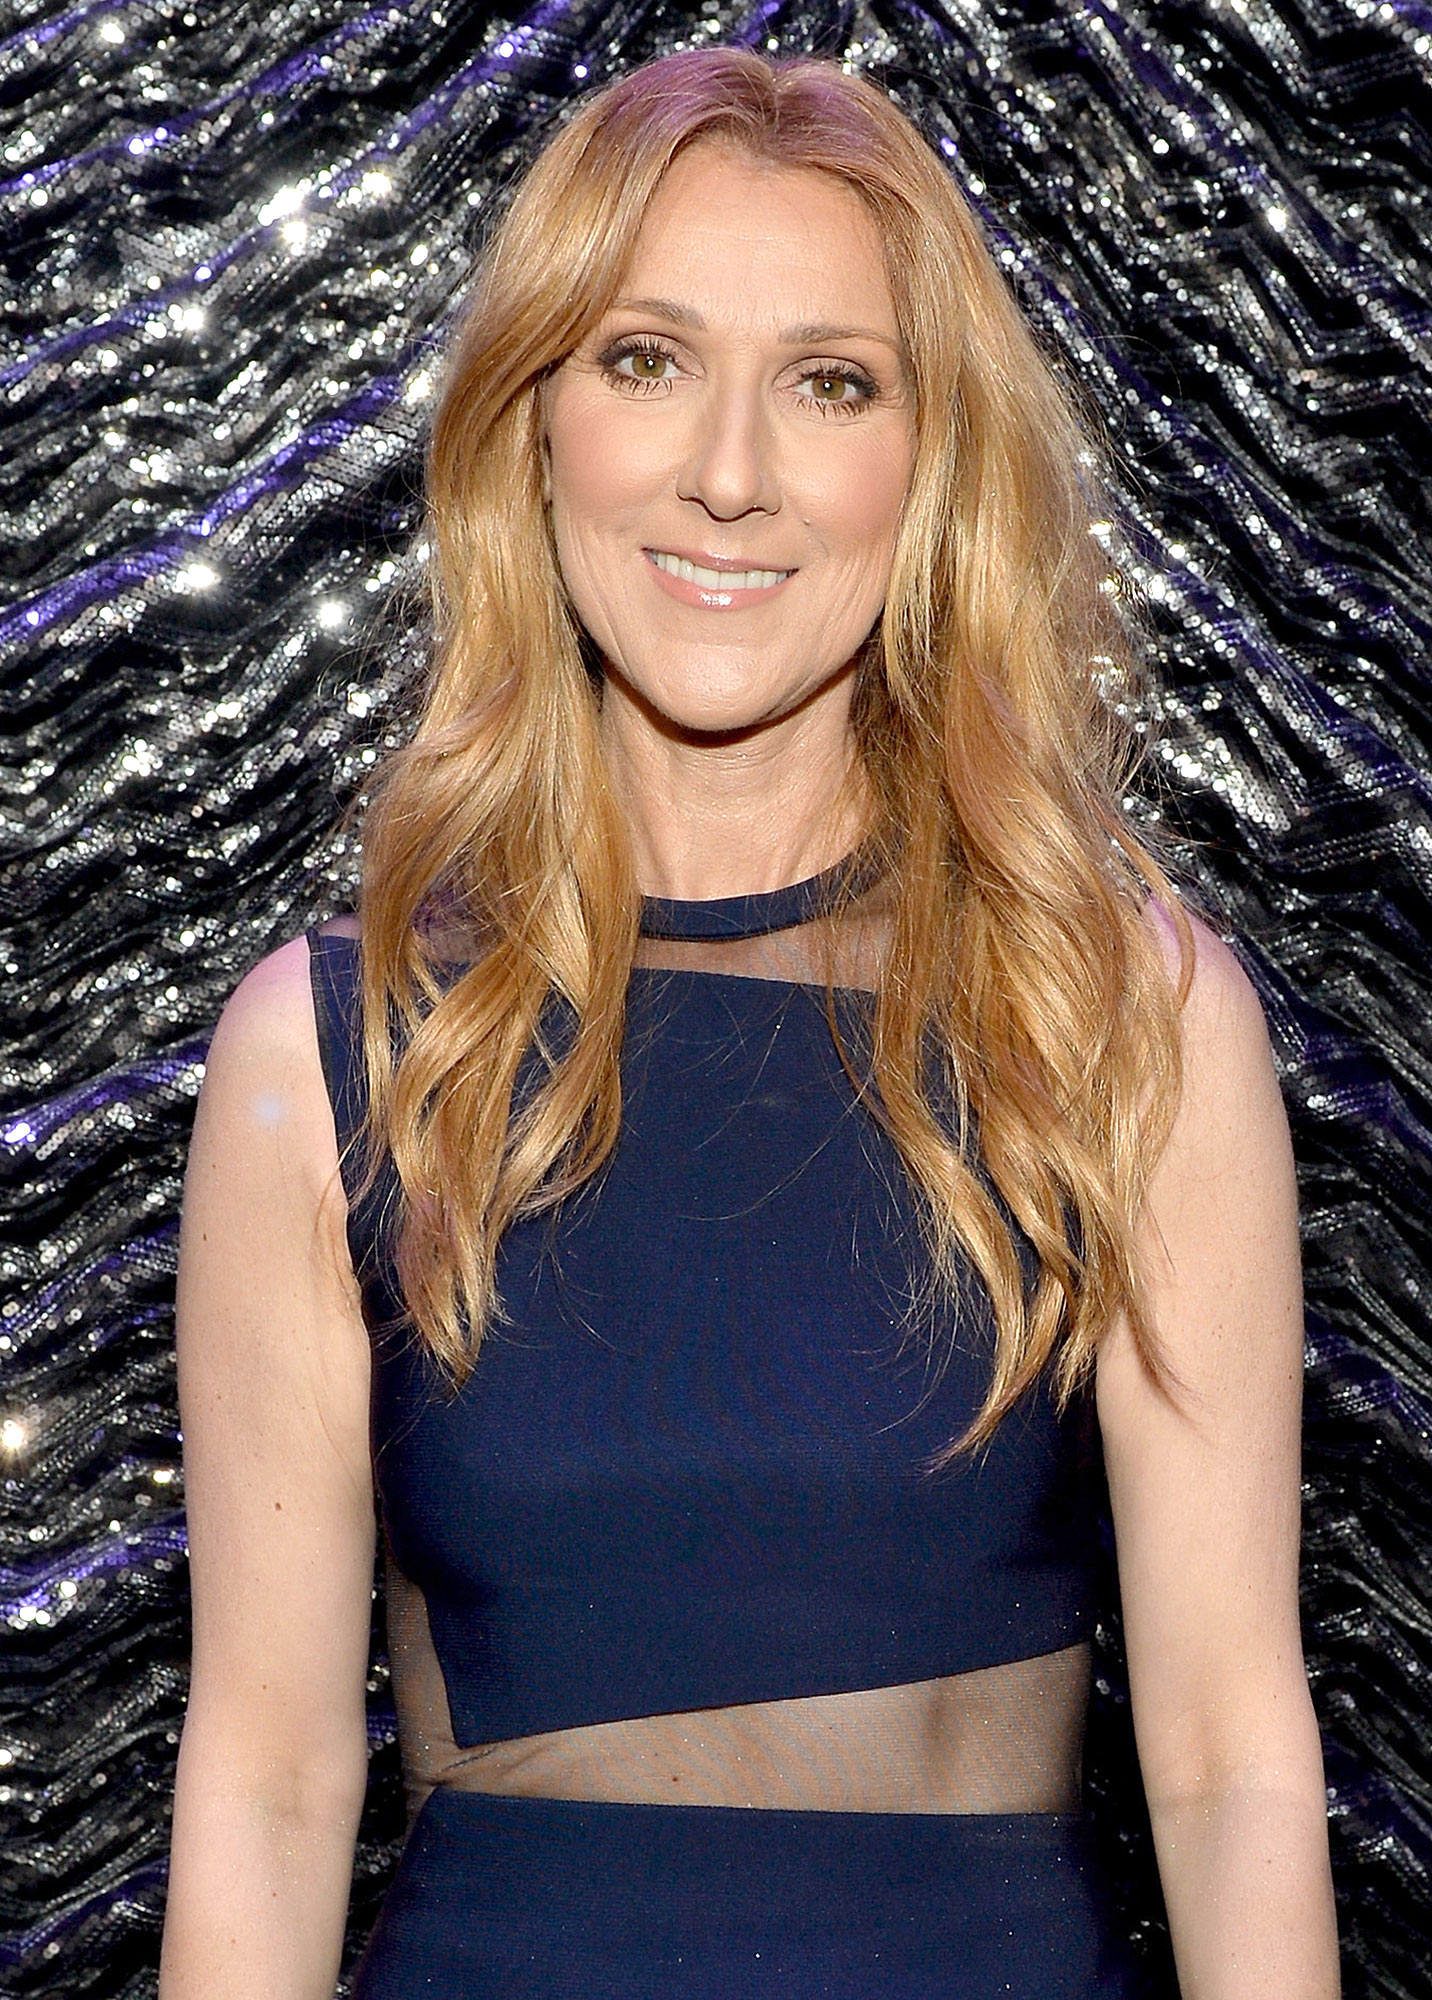 LAS VEGAS, NV - NOVEMBER 18: Singer Celine Dion onstage at the 2015 Latin Recording Academy Special Awards during the 16th Latin GRAMMY Awards at the MGM Grand Hotel & Casino on November 18, 2015 in Las Vegas, Nevada. (Photo by Rodrigo Varela/WireImage)